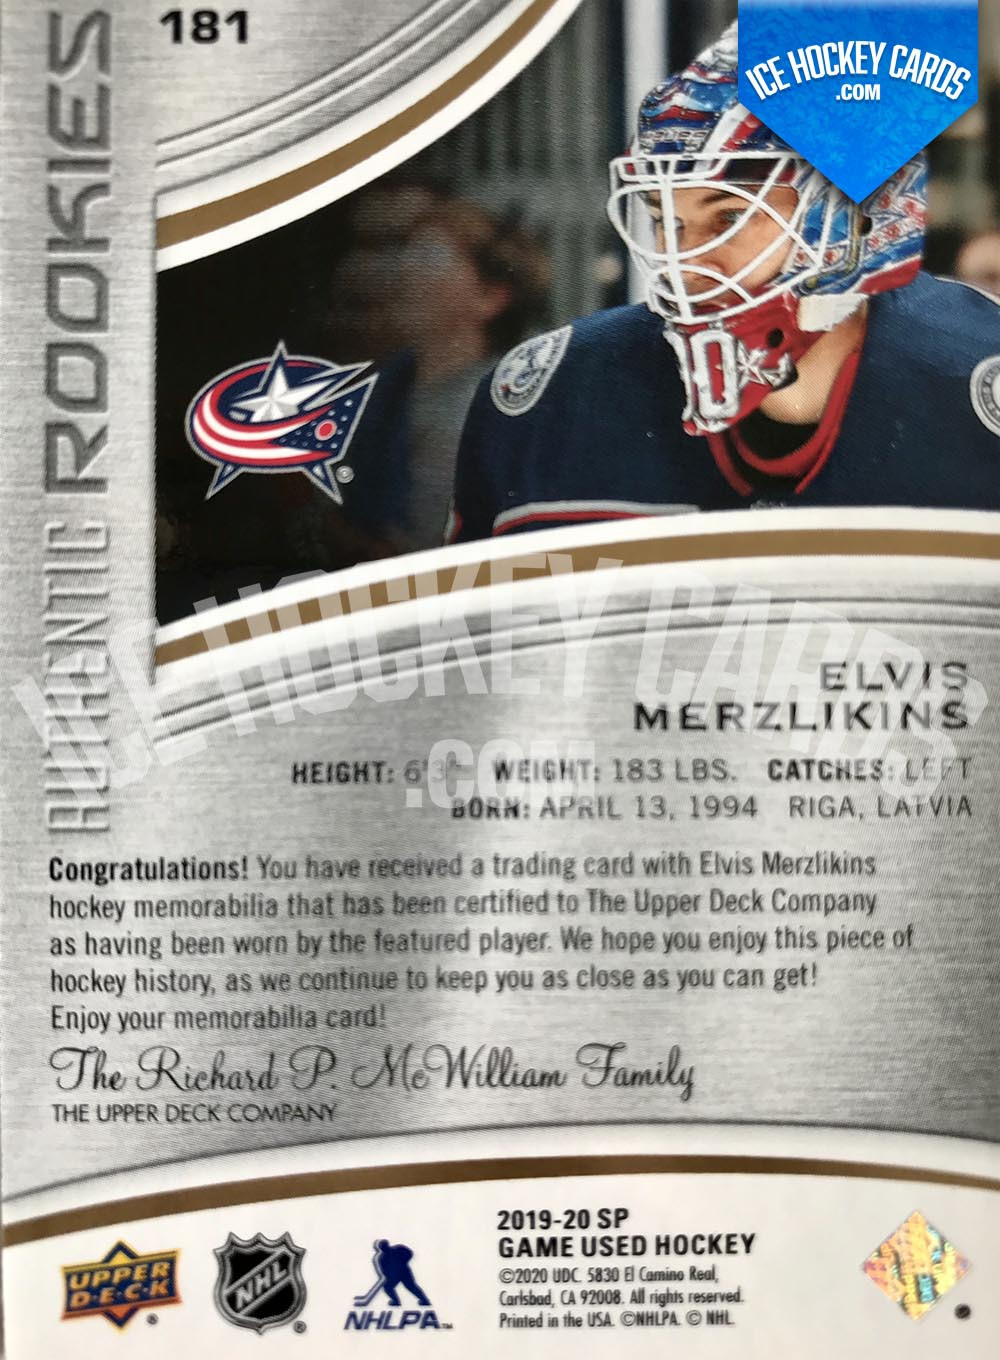 Upper Deck - SP Game Used 2019-20 - Elvis Merzlikins Authentic Rookies Patch Card back